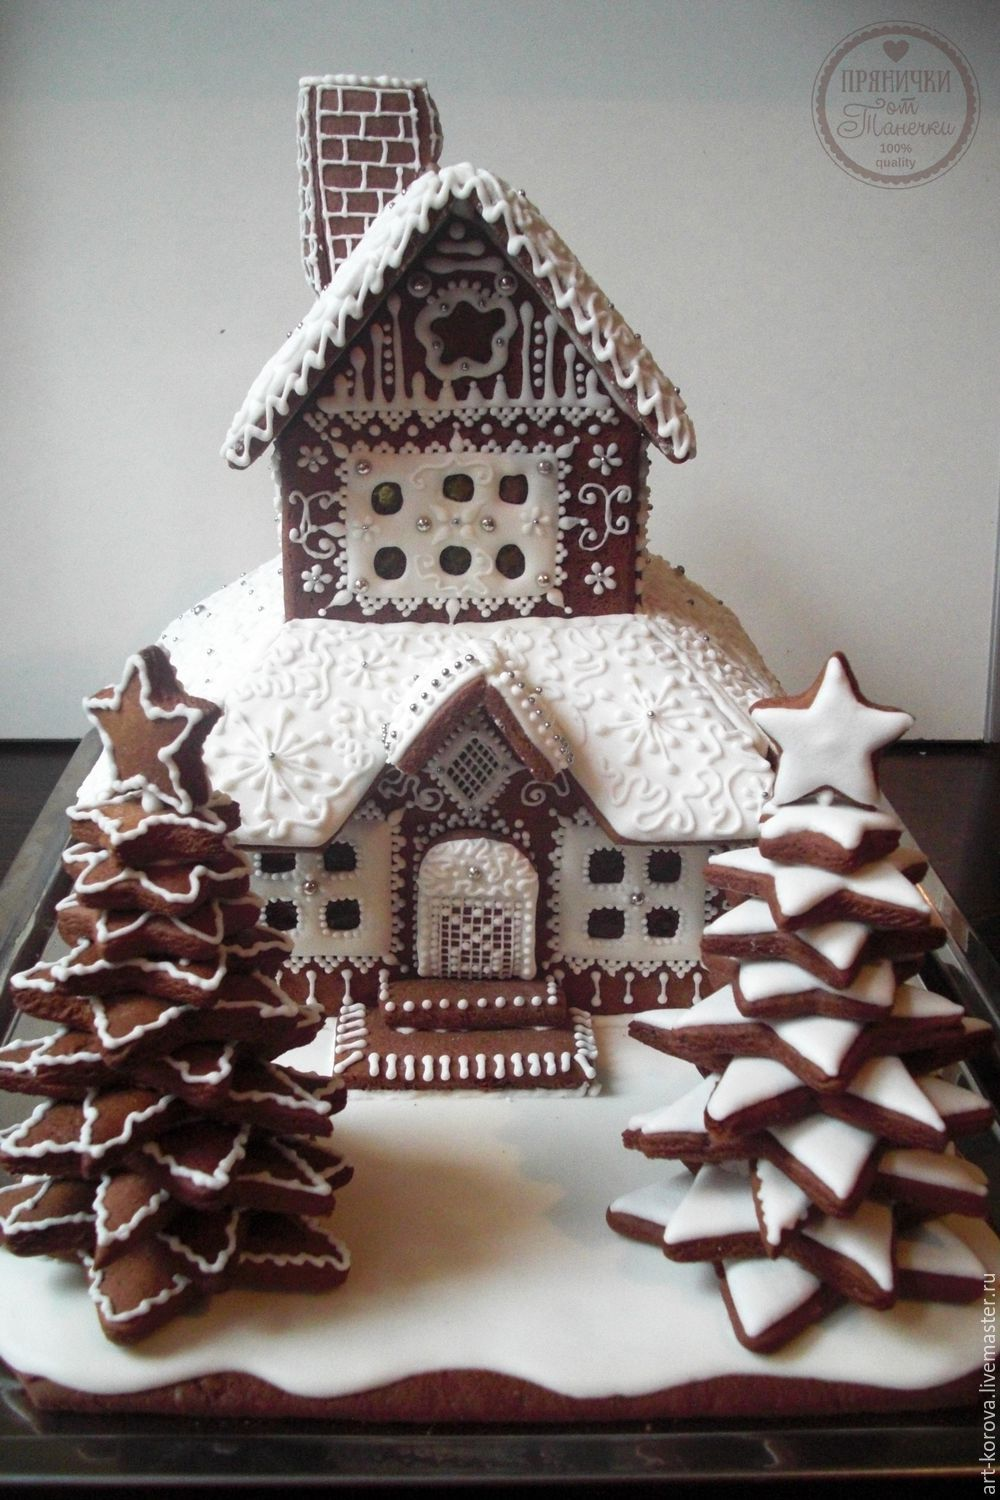 Sophisticated Gingerbread House | Charmingly Cute Gingerbread House Ideas